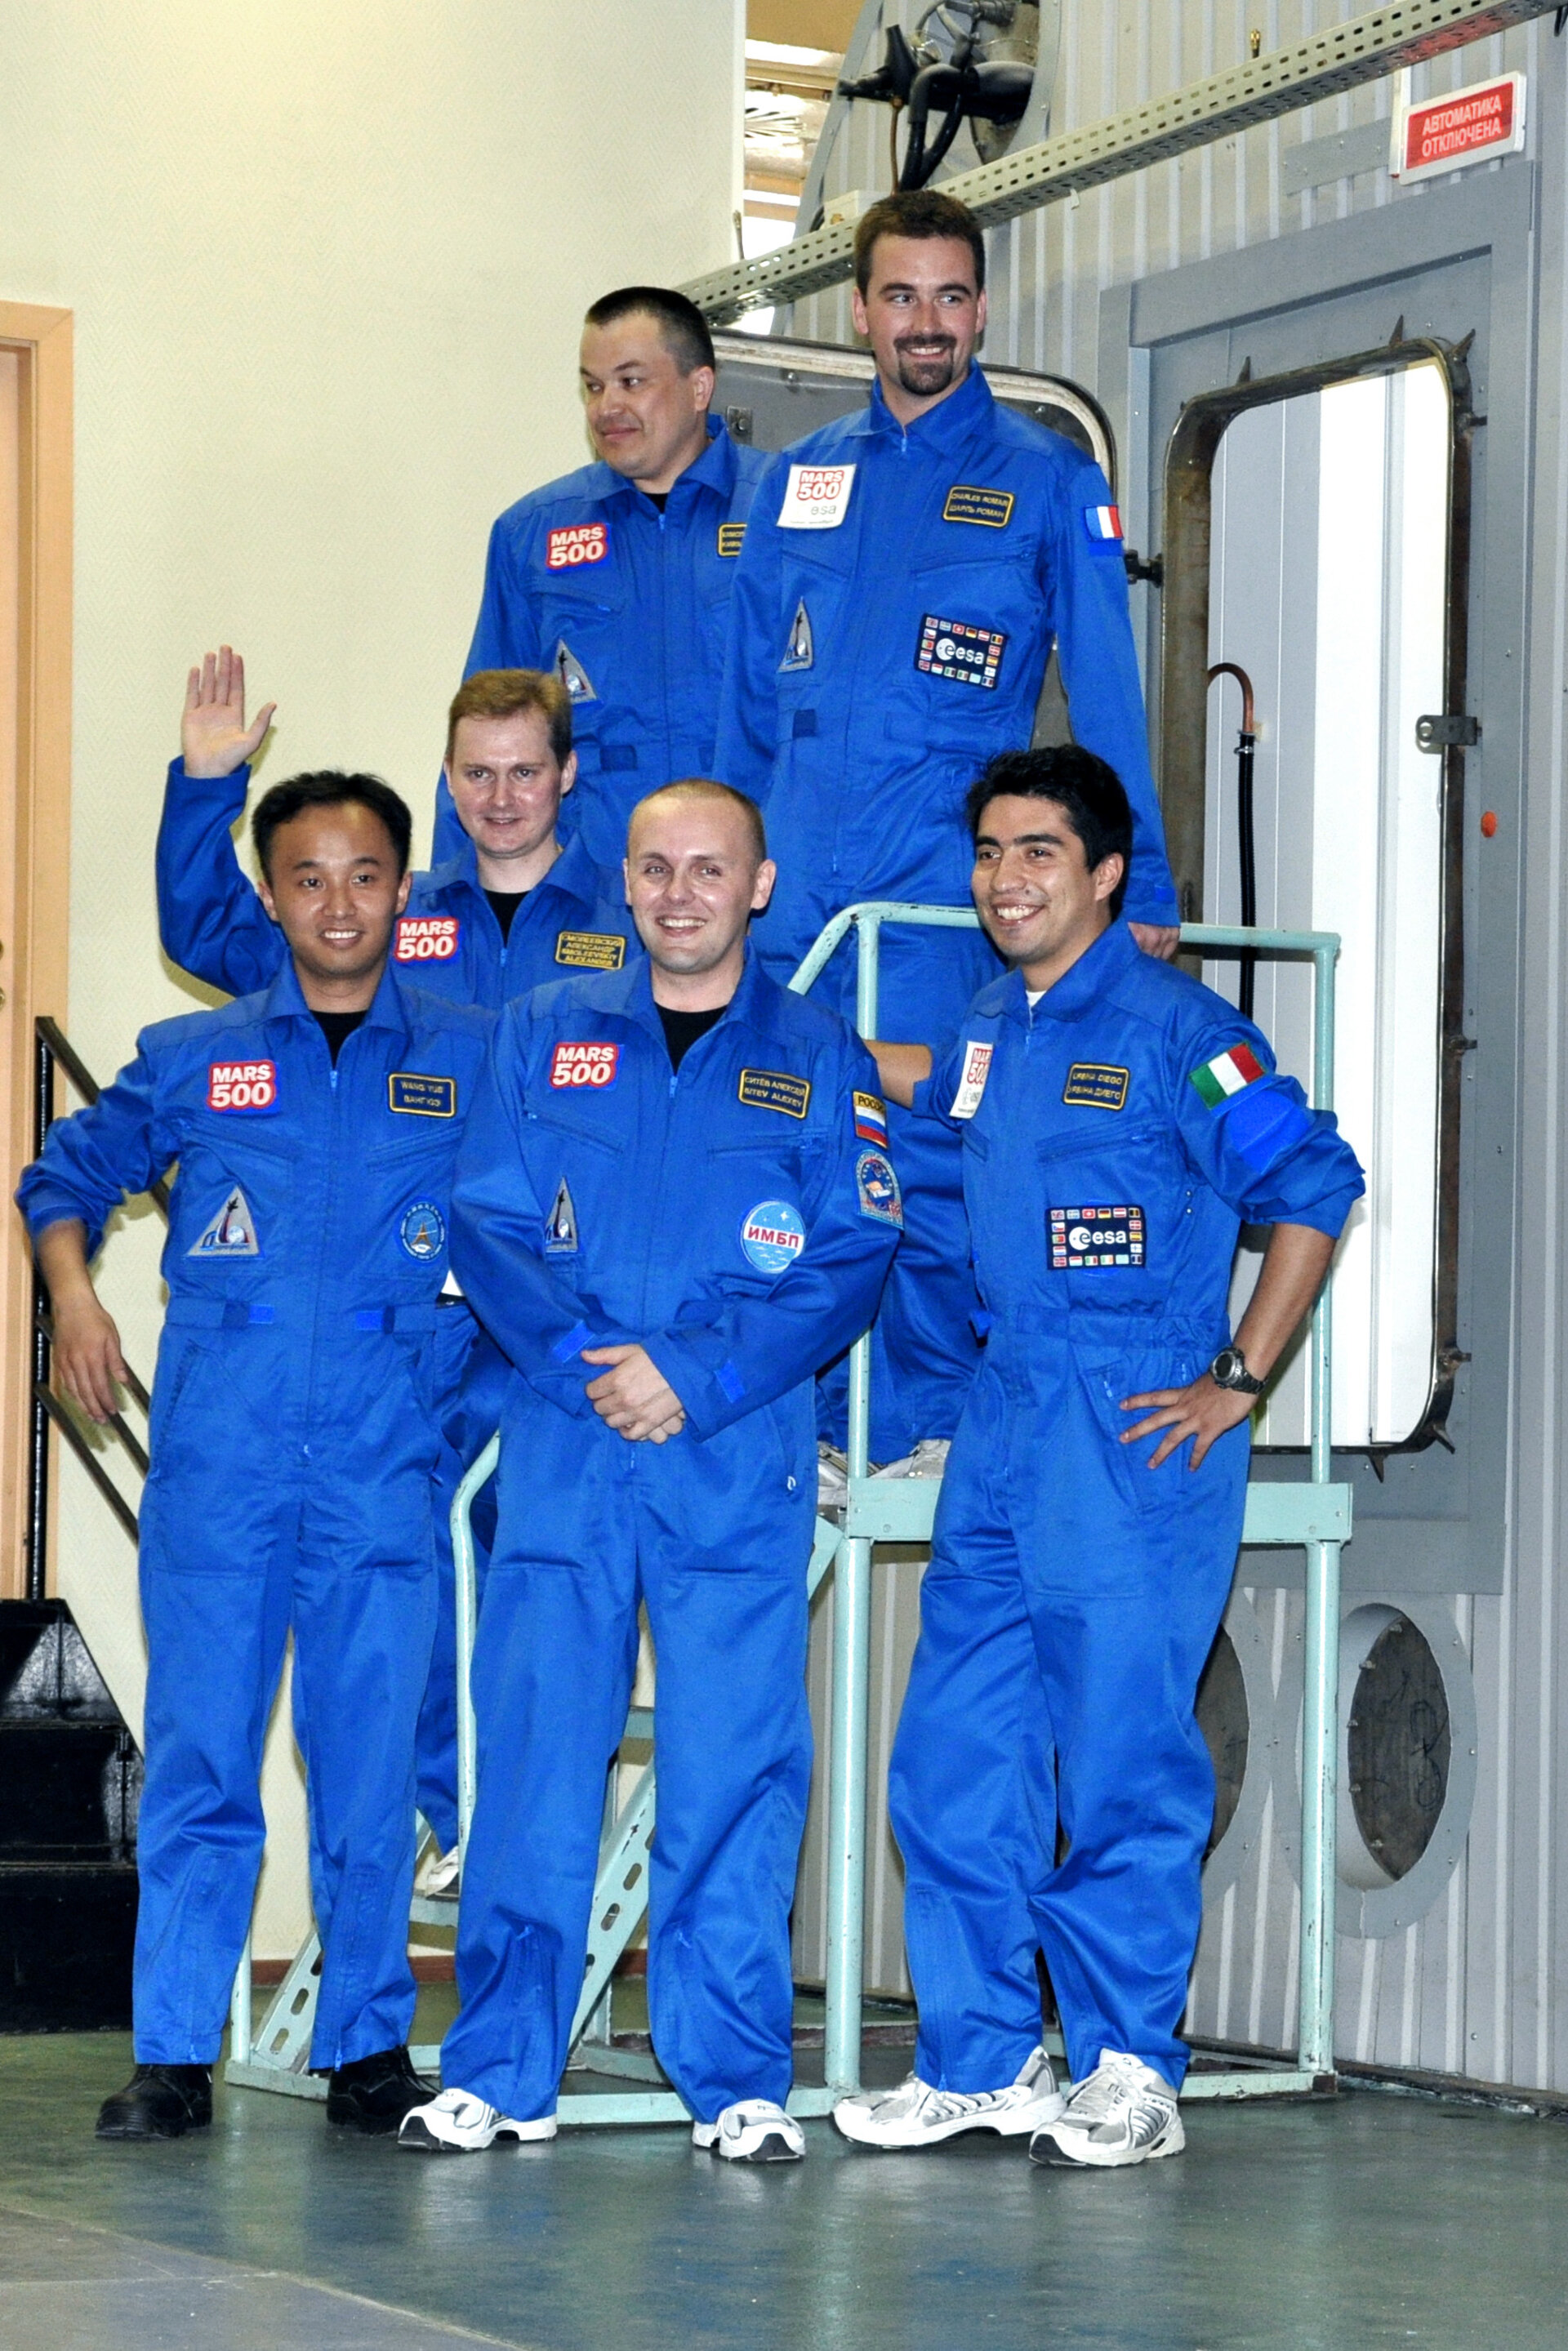 Mars500 520-day isolation crew just before the entry to the facility at in Moscow (11:49 CET) on 3 June 2010.